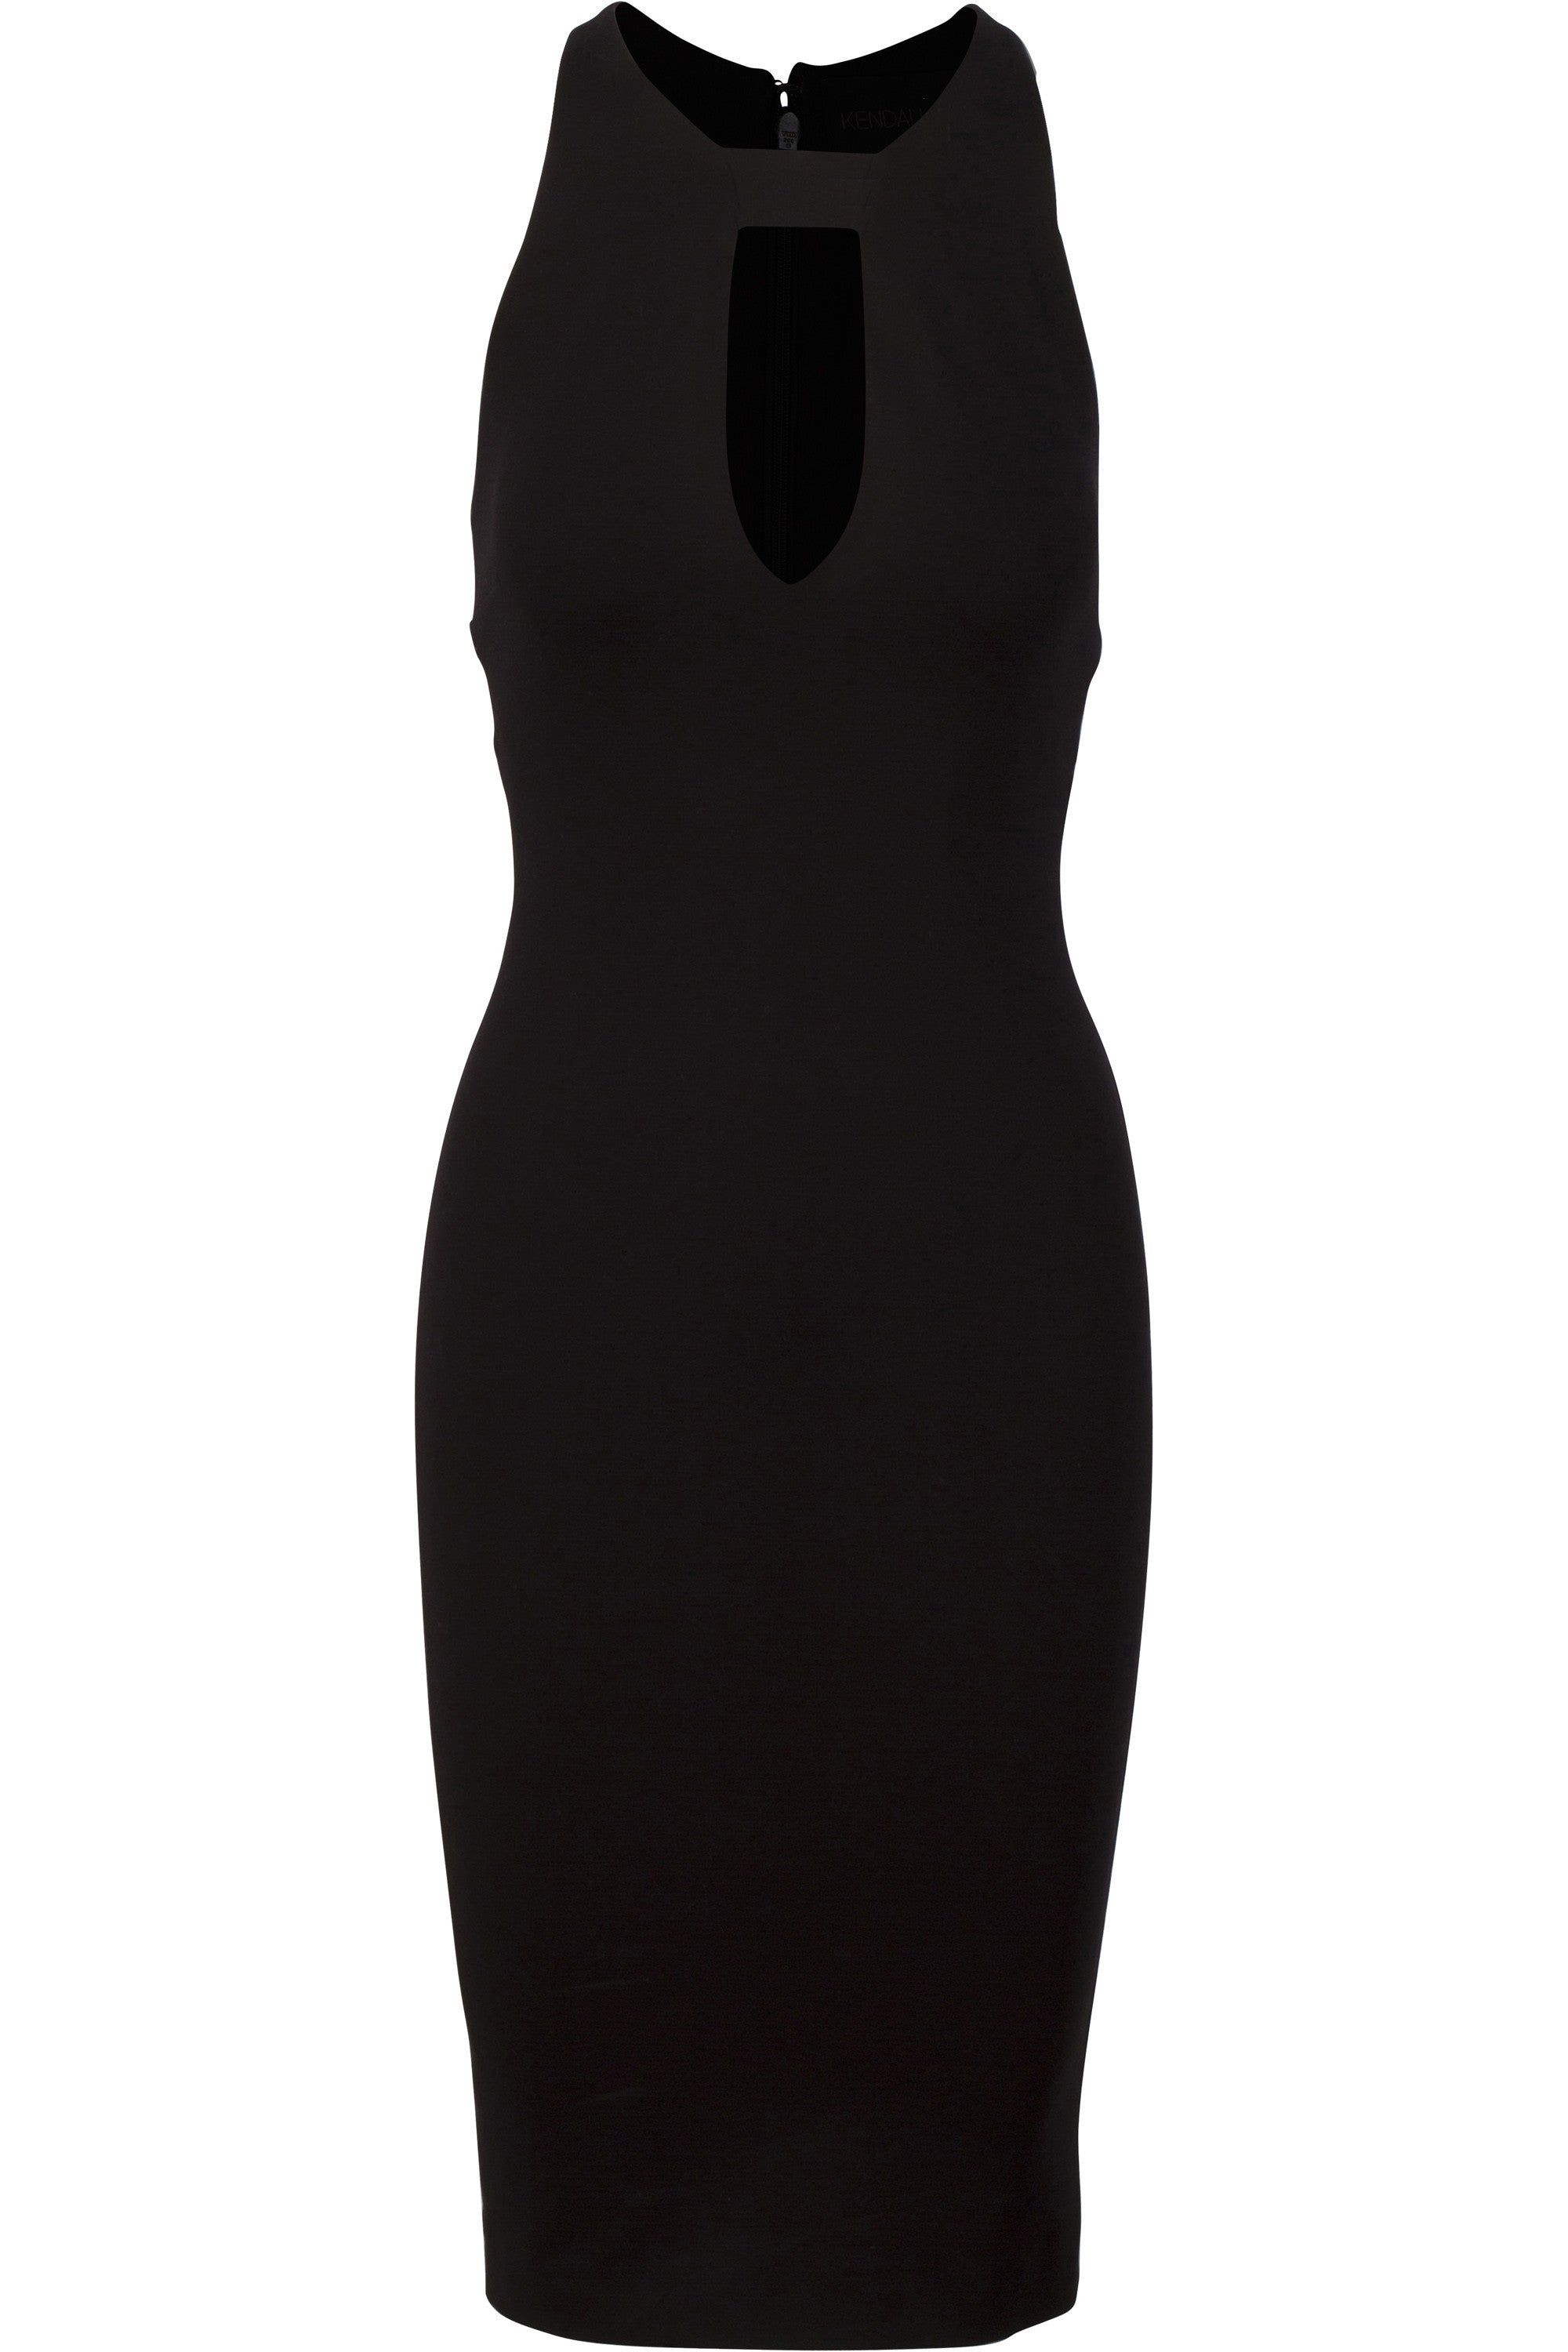 CUT OUT DRESS DRESSES by KENDALL + KYLIE